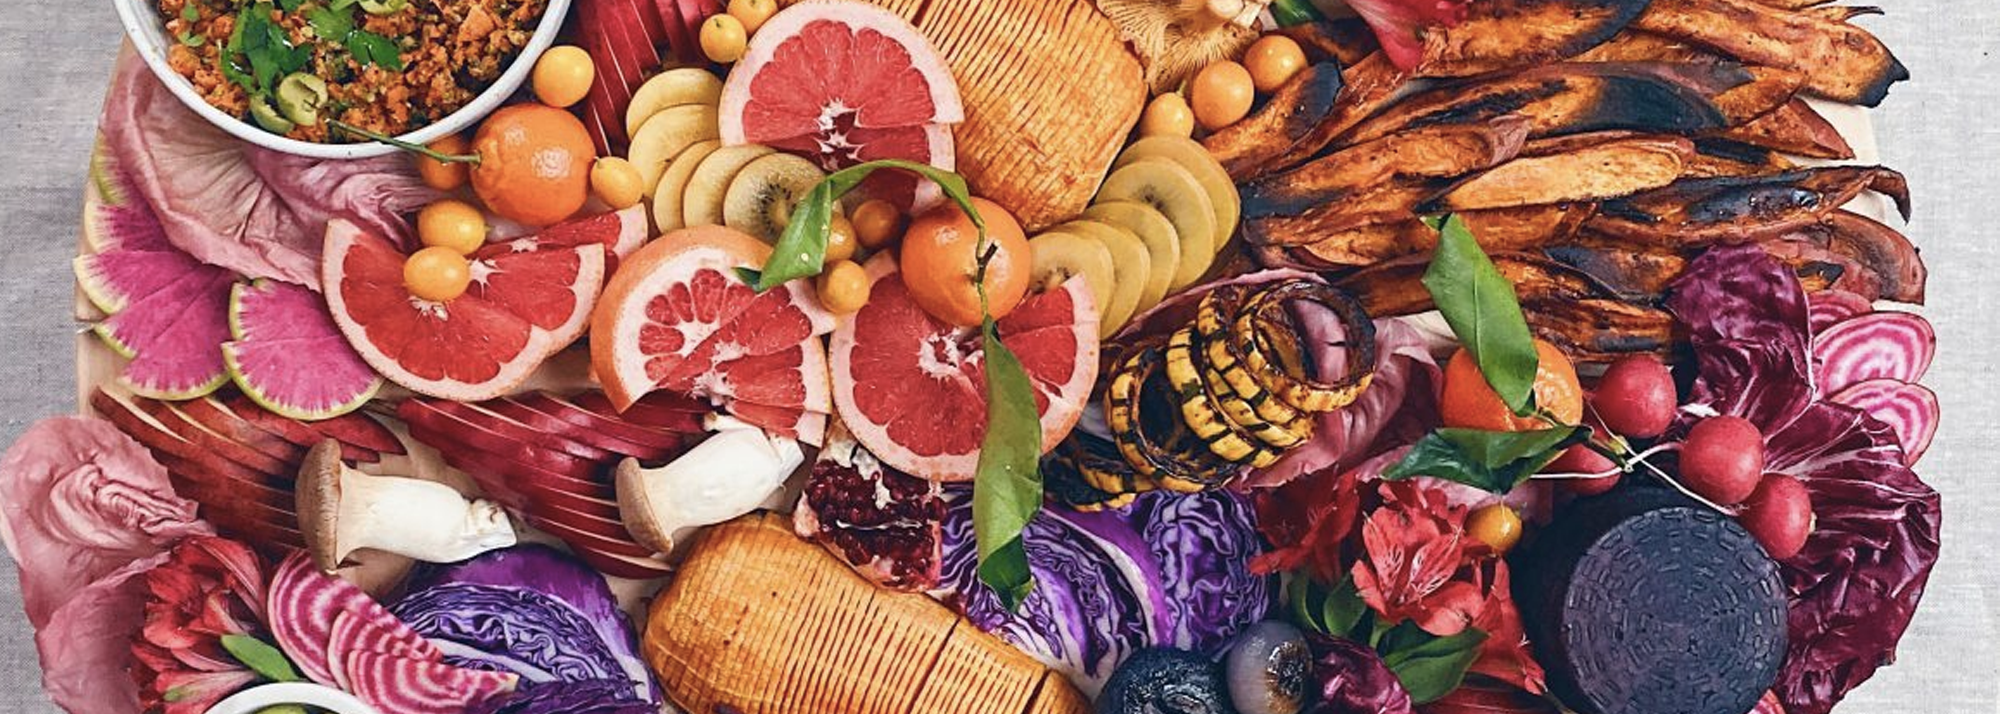 Inspiring Healthy Food Instagram Accounts to Follow